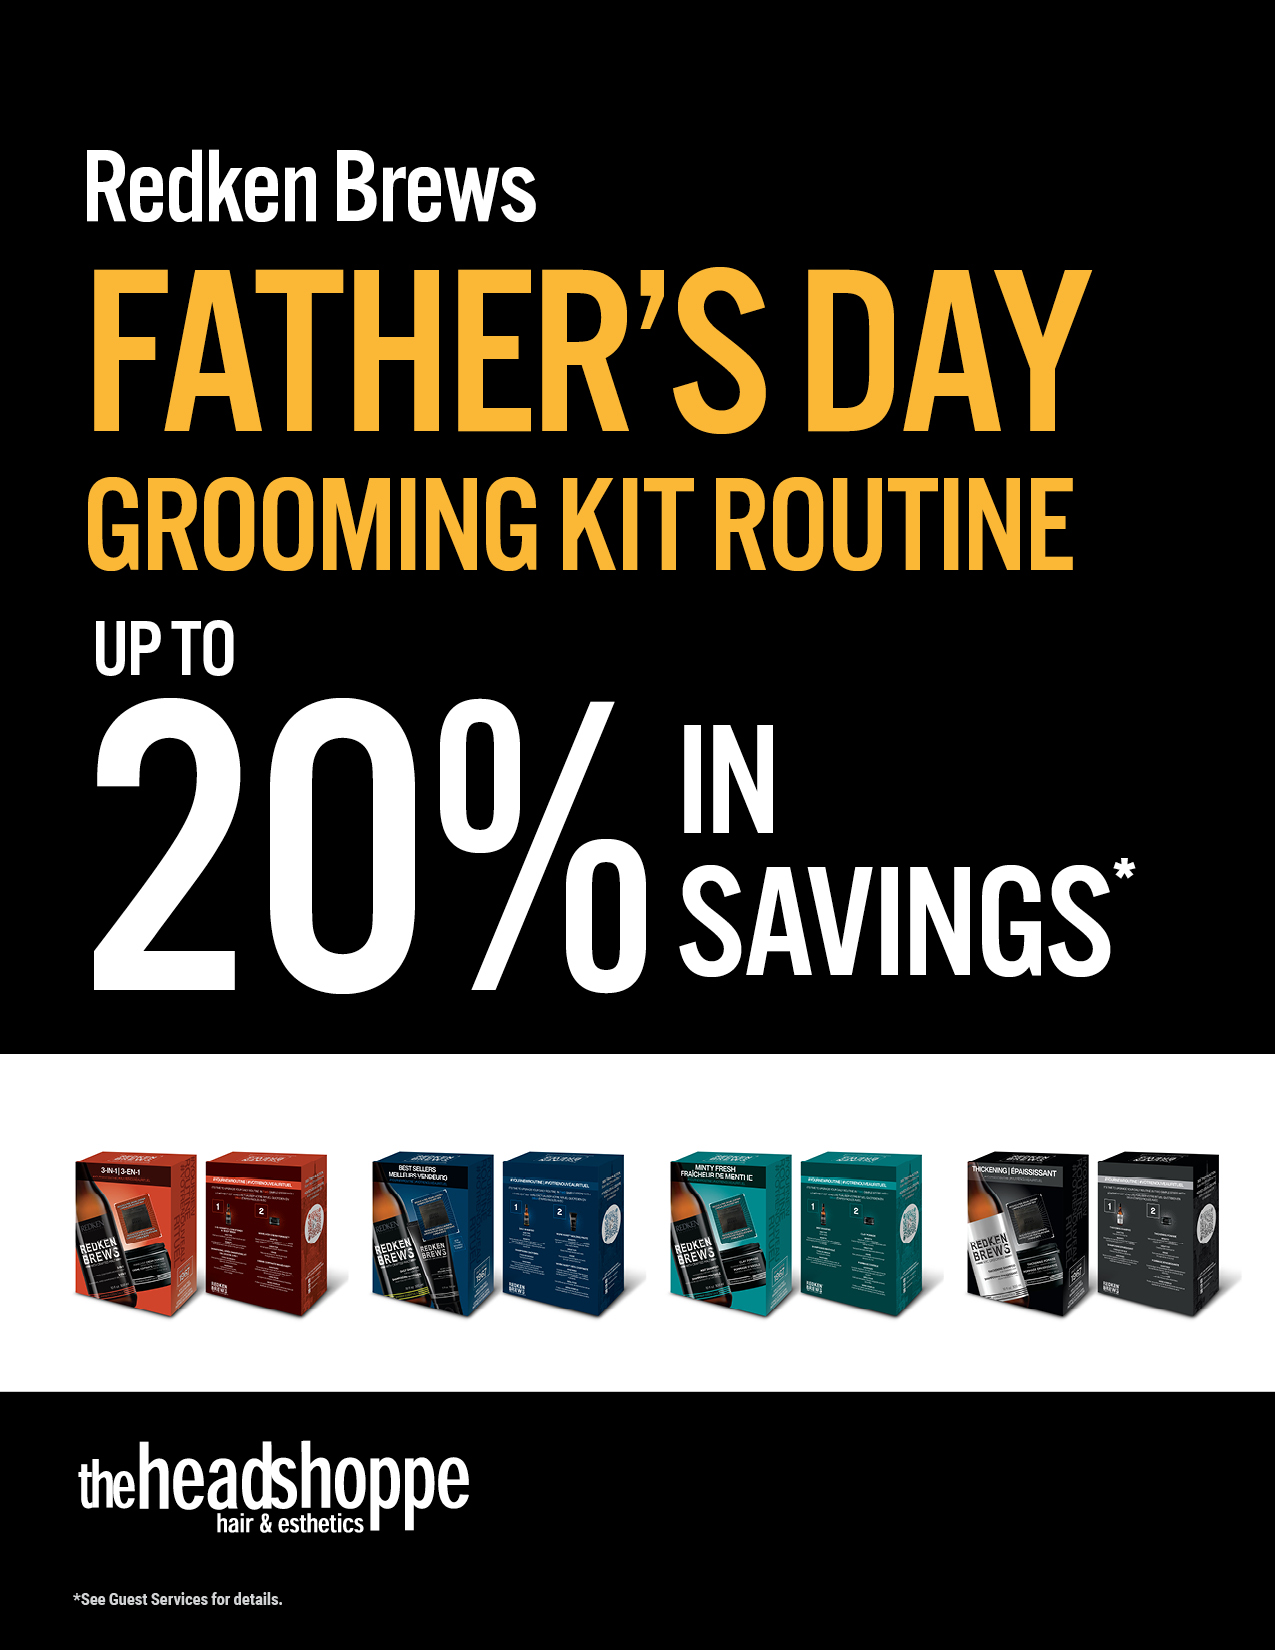 Redken Brews Father's Day Grooming Kit Routines